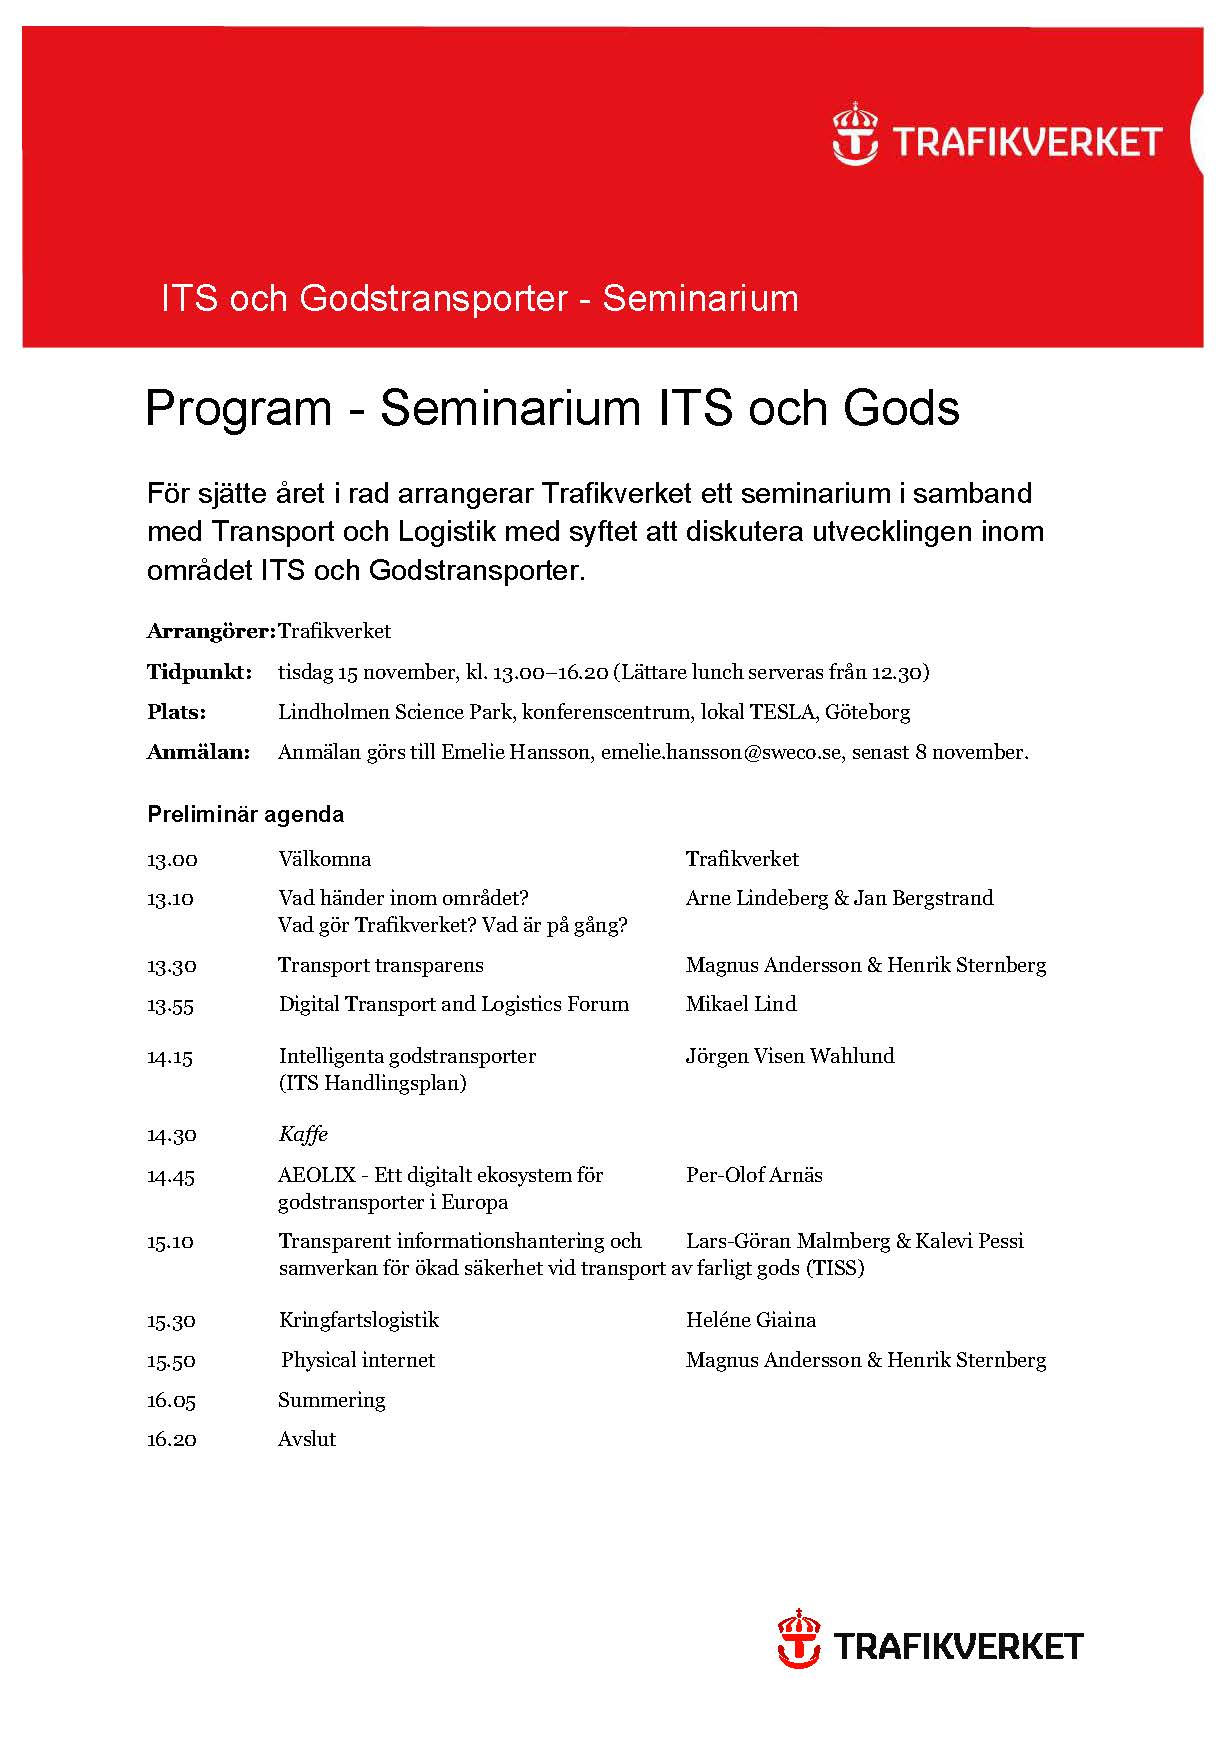 its_och_gods_-_seminarium_15_november_goteborg_agenda.jpg